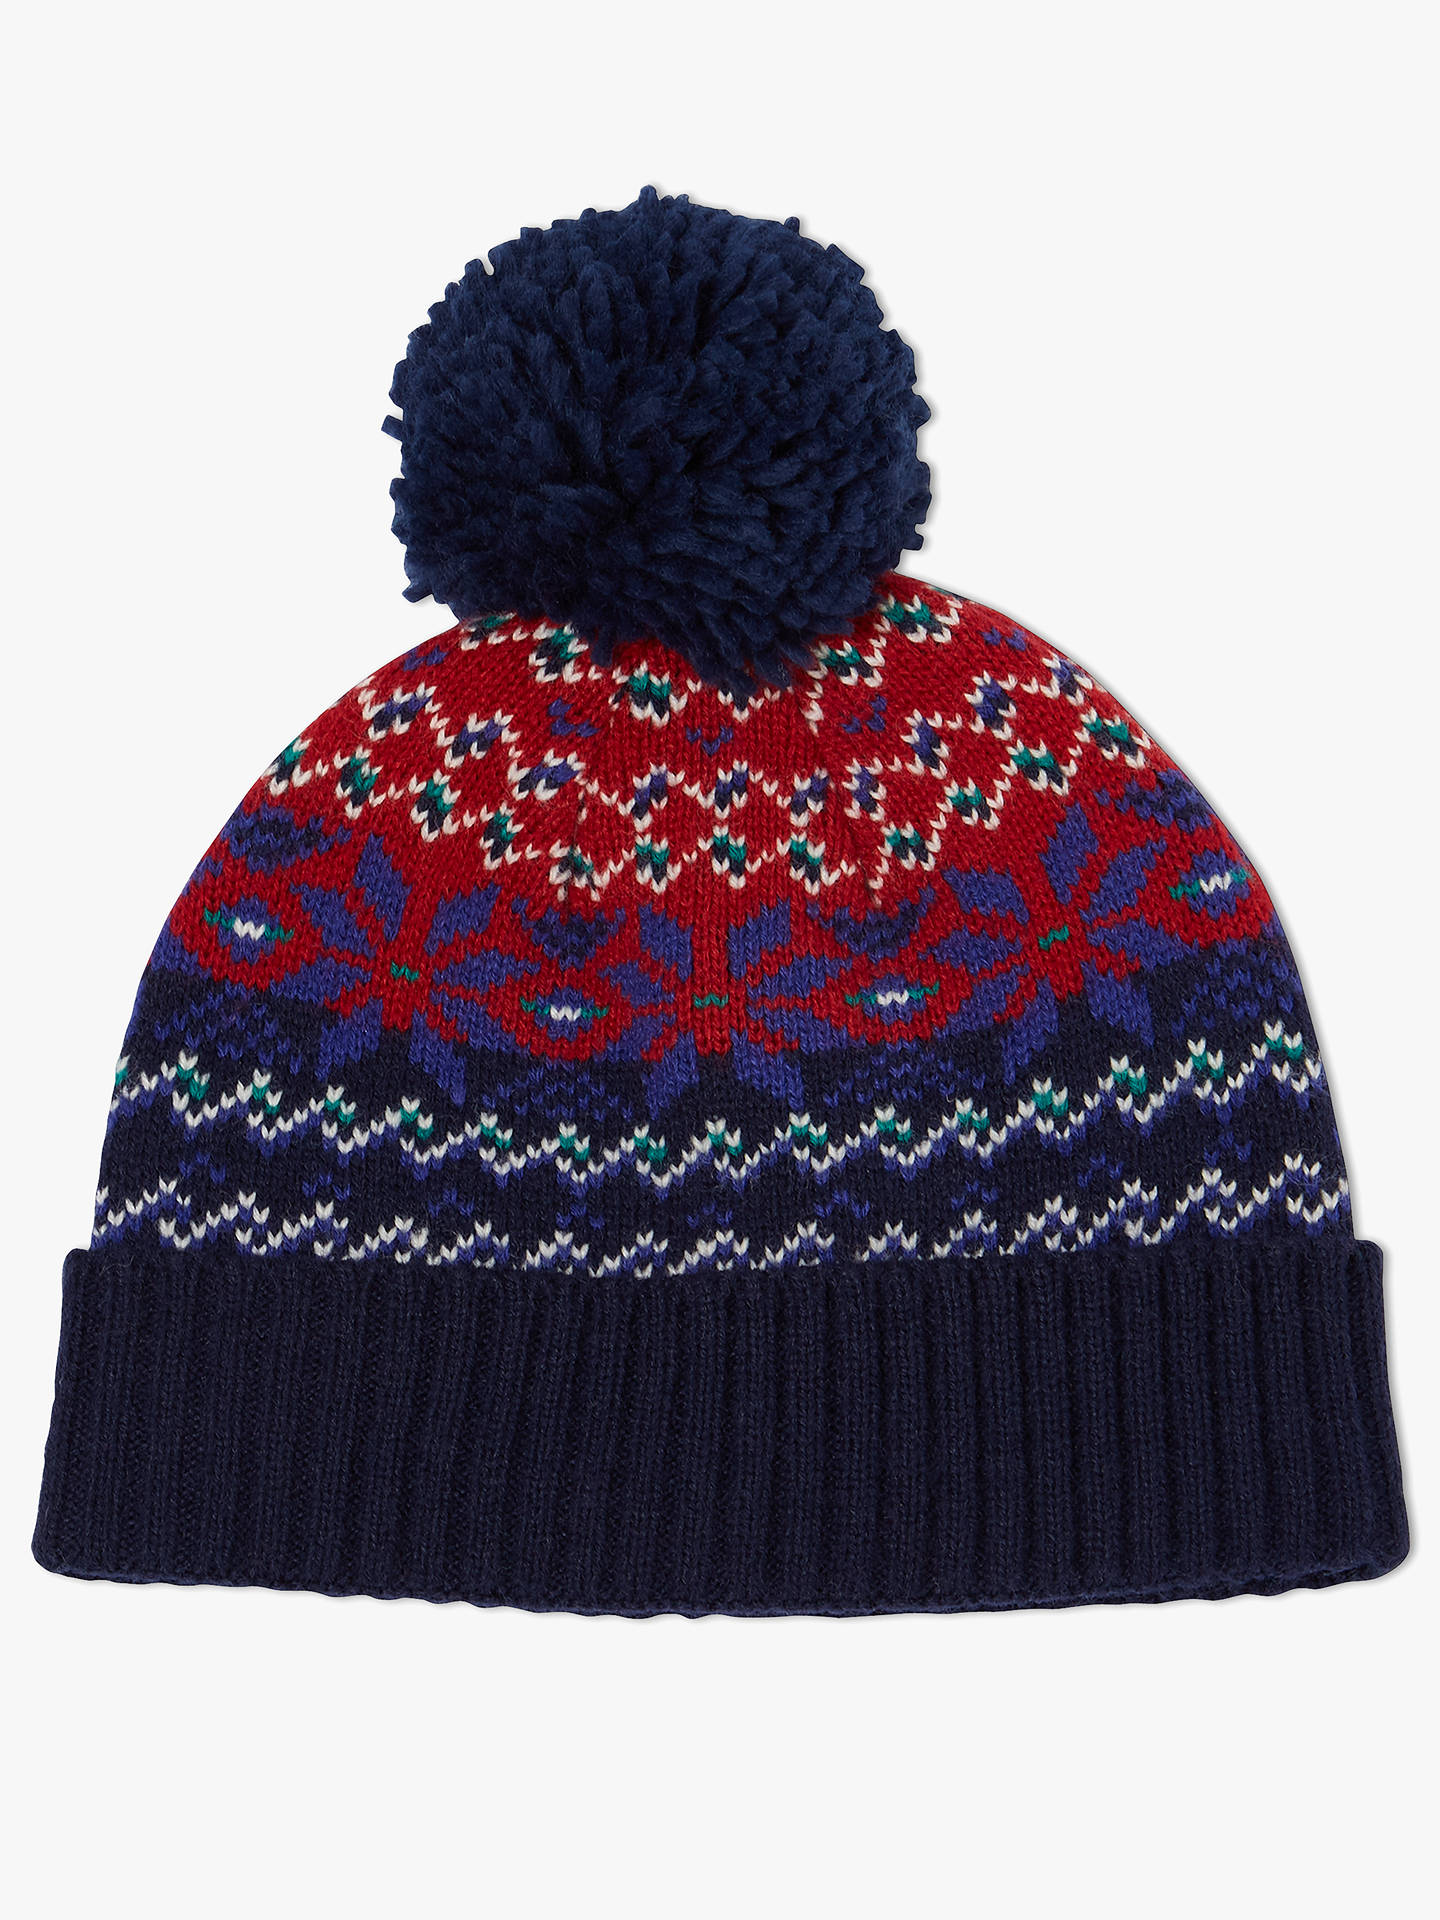 867c3510592 Buy John Lewis   Partners Children s Fair Isle Beanie Hat